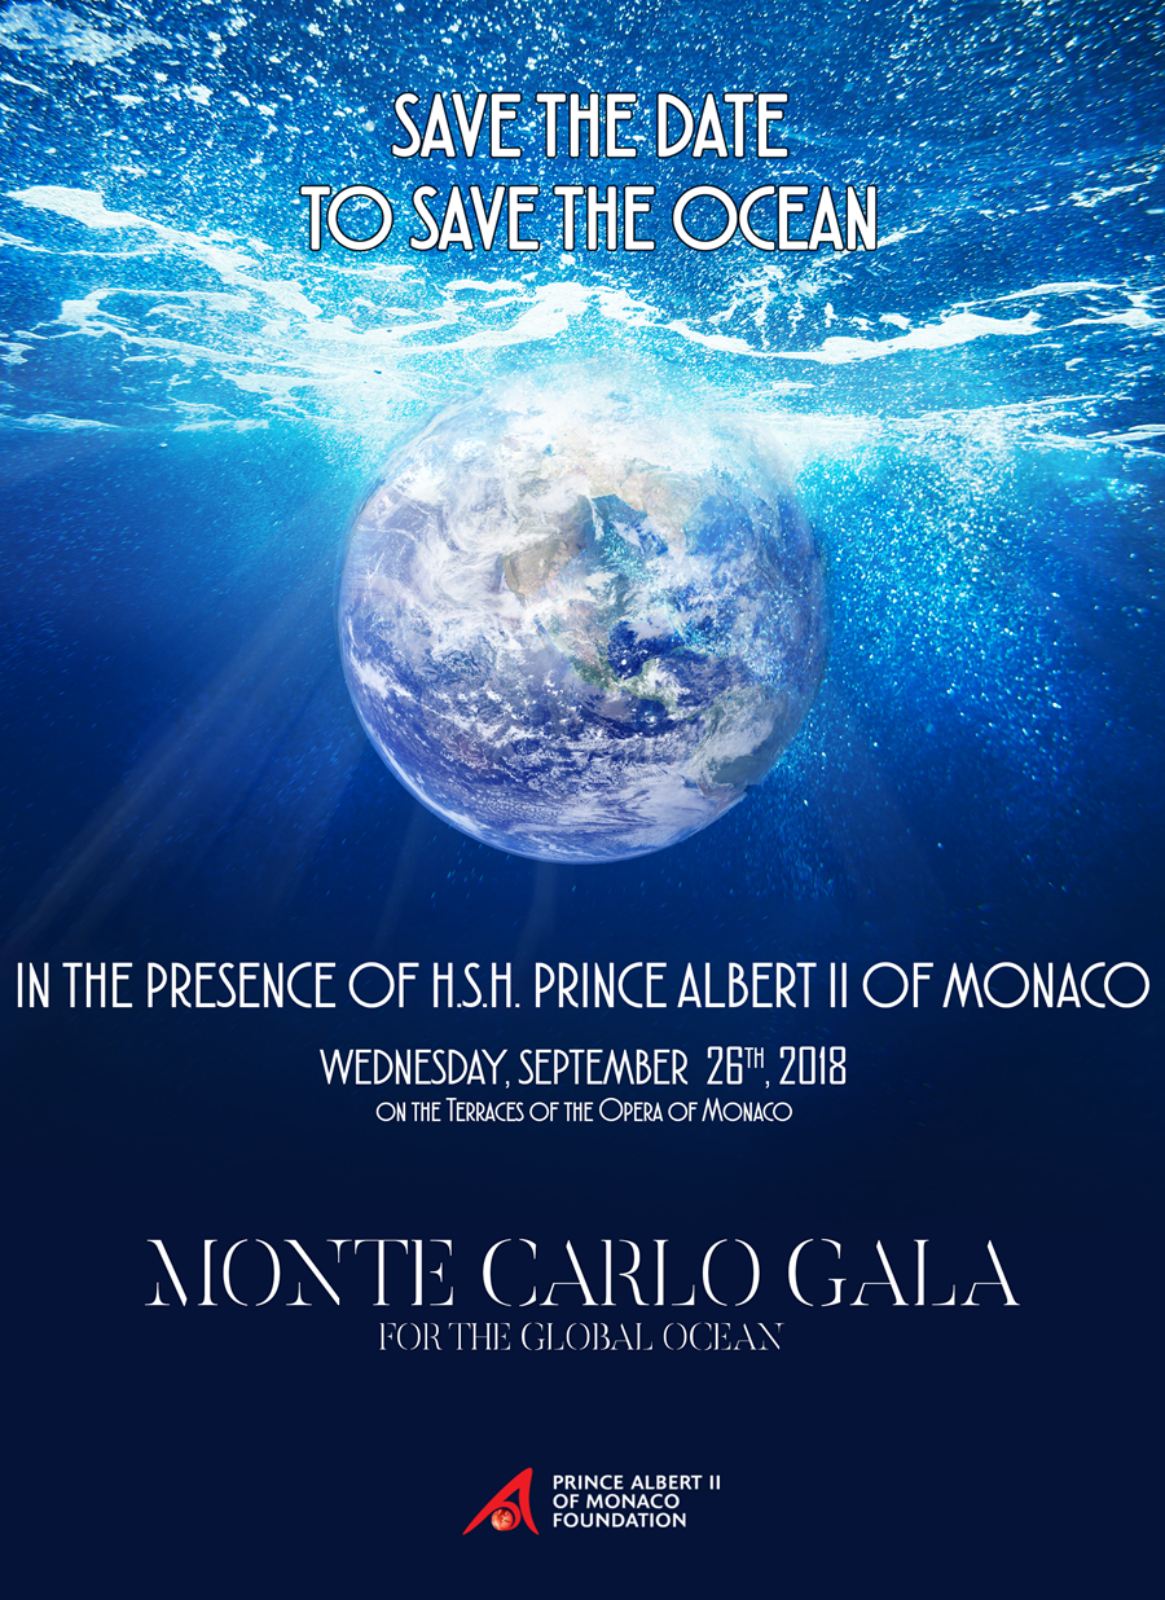 THE MONTE-CARLO GALA  FOR THE GLOBAL OCEAN 2018